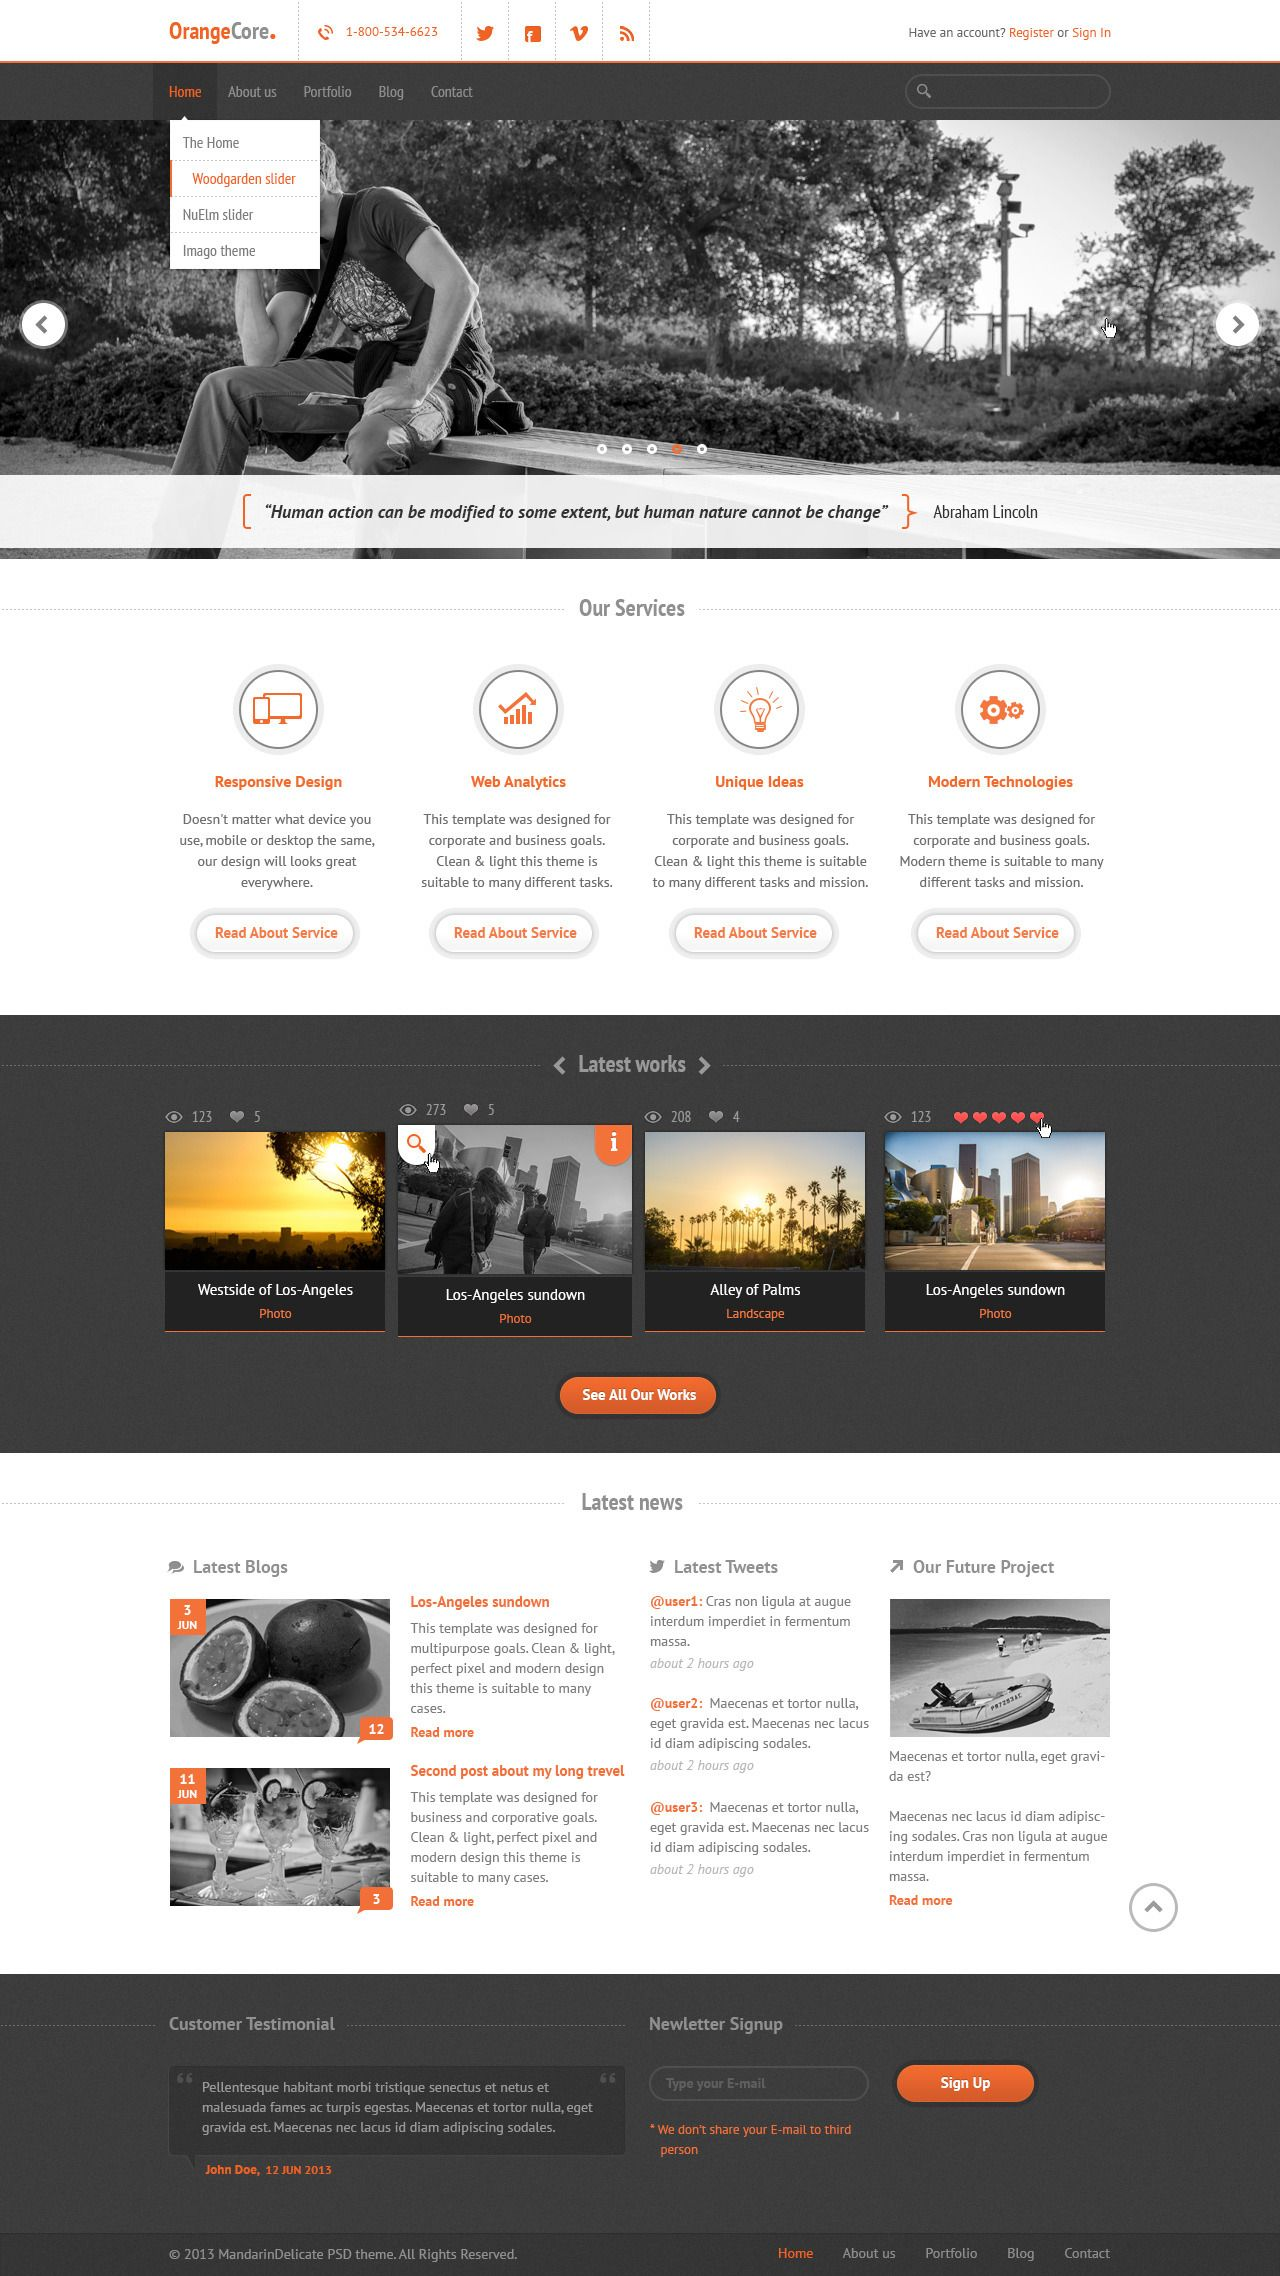 Ais Perth Provides Best Website Development Services In Australia With Affordable Rates And You Can Hire Corporate Web Design Web Development Design Web Design